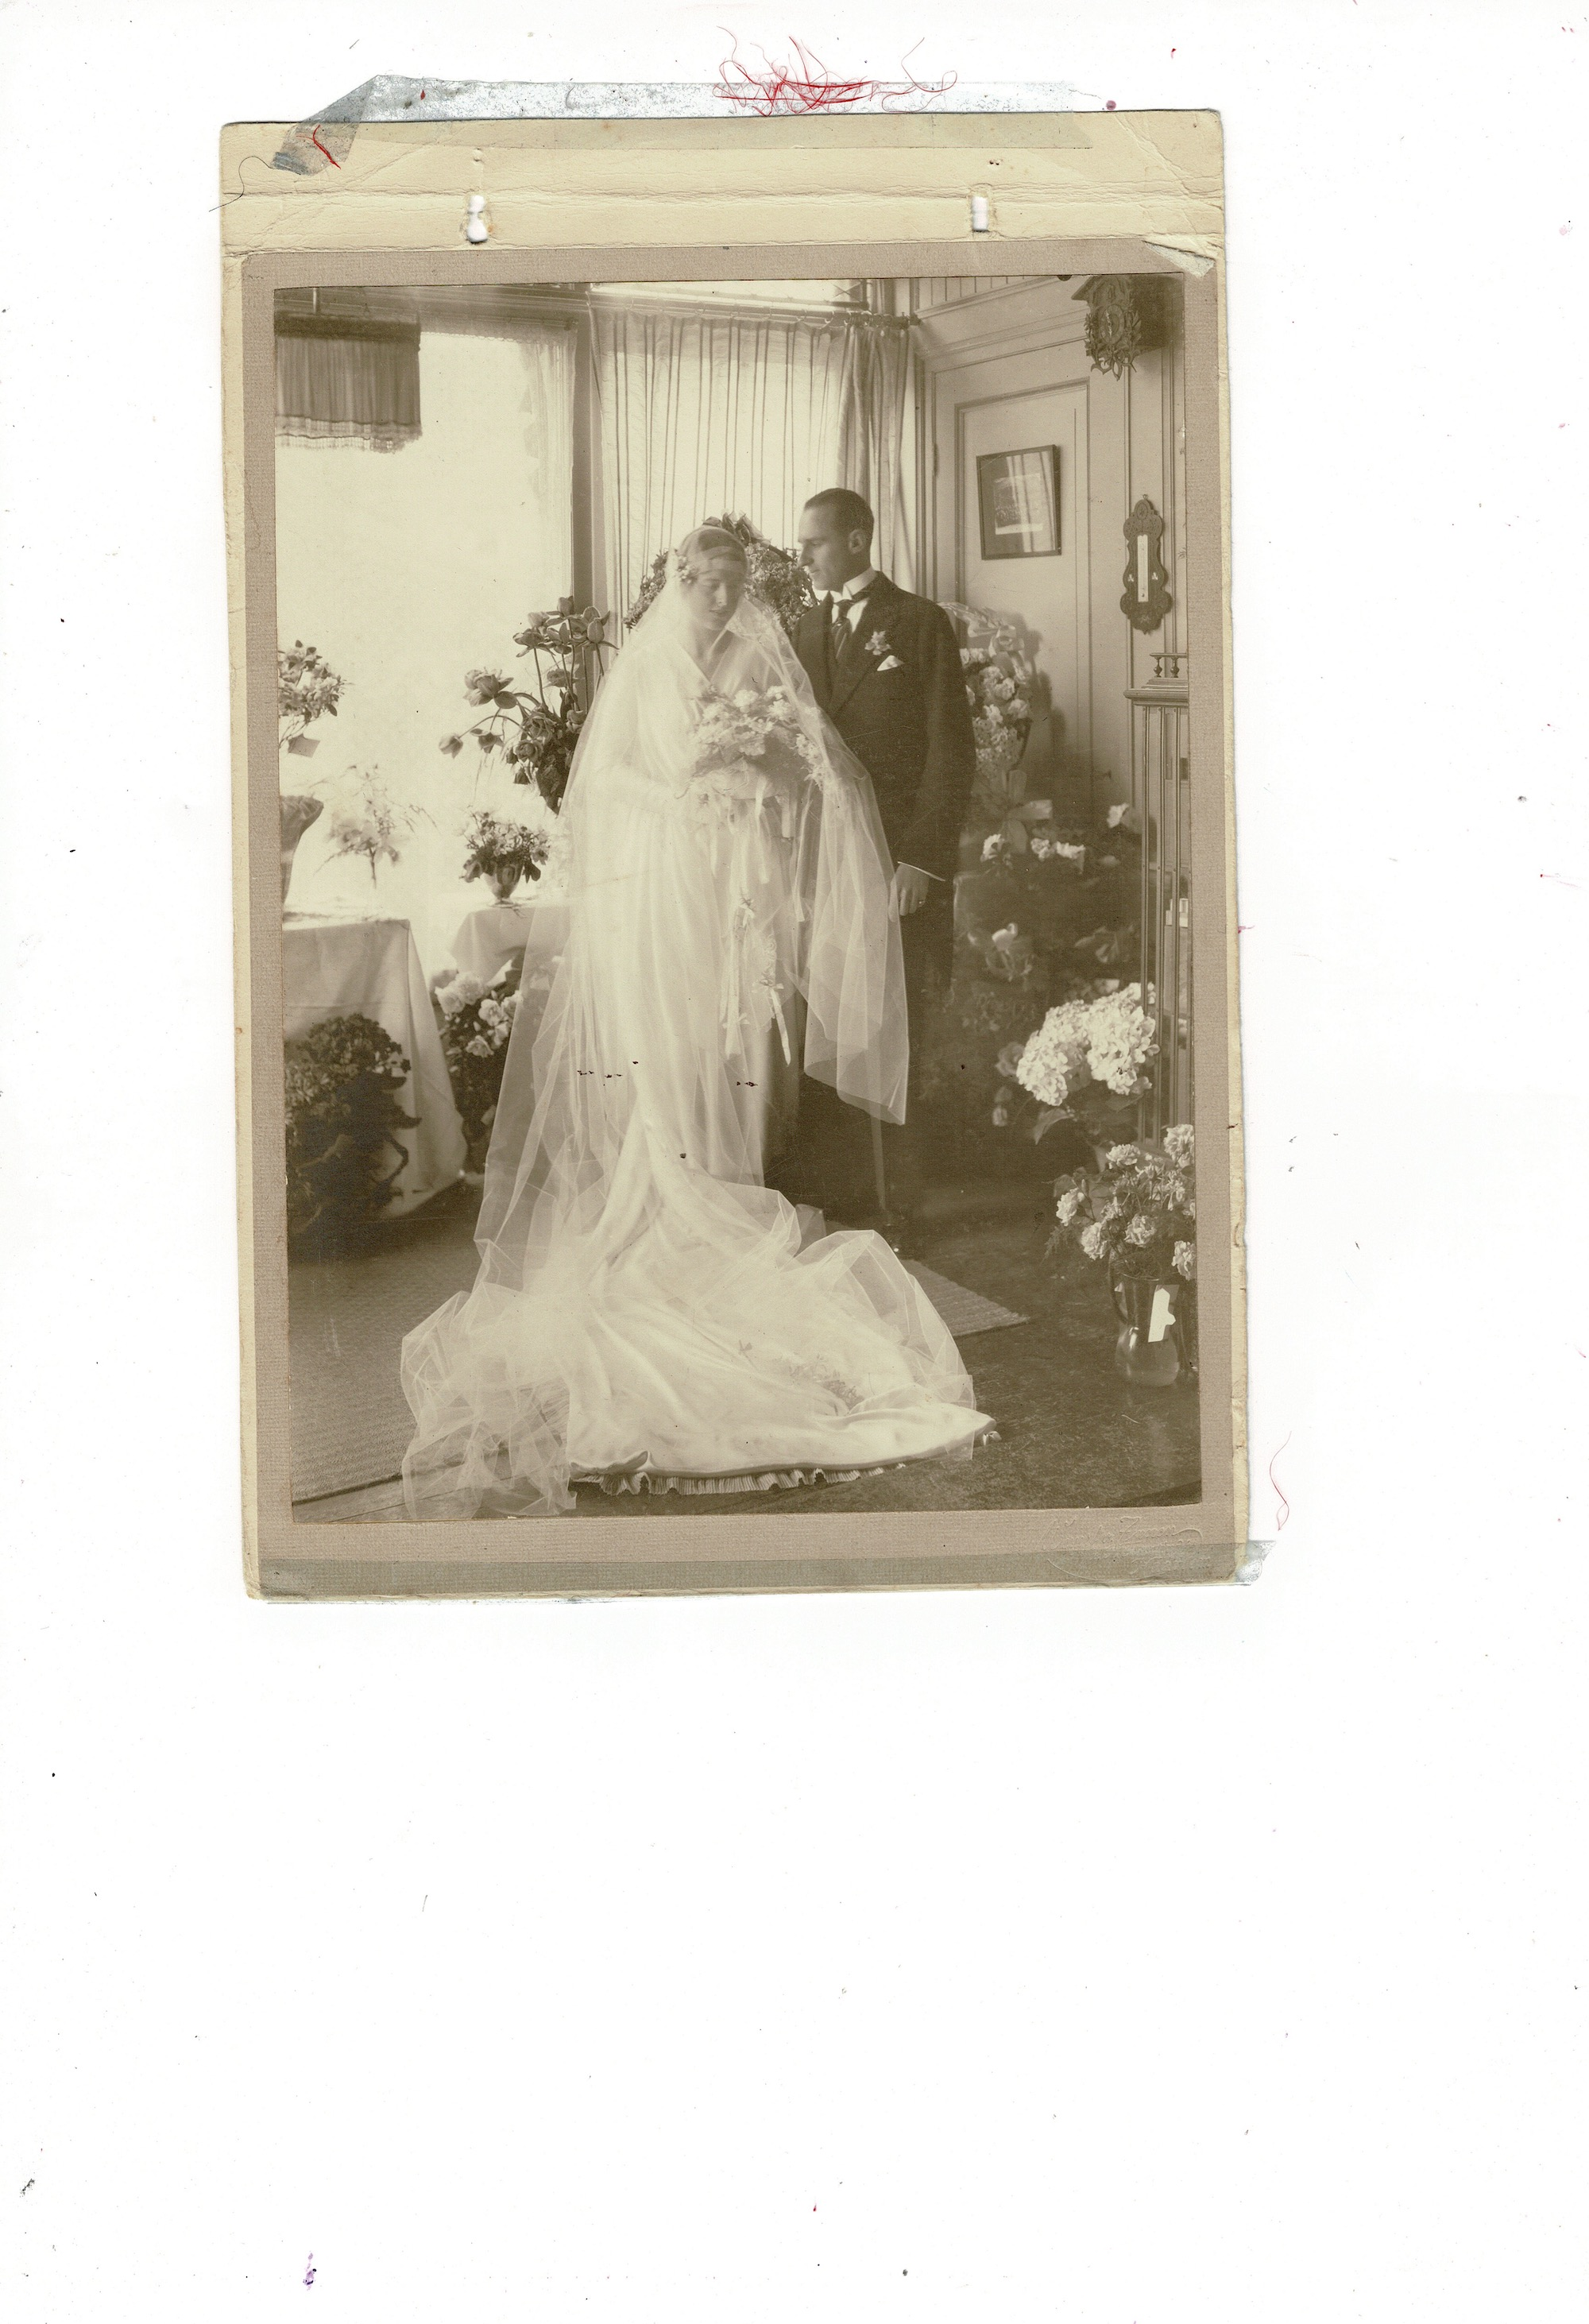 Old wedding photo found at Pandora, Dordrecht.